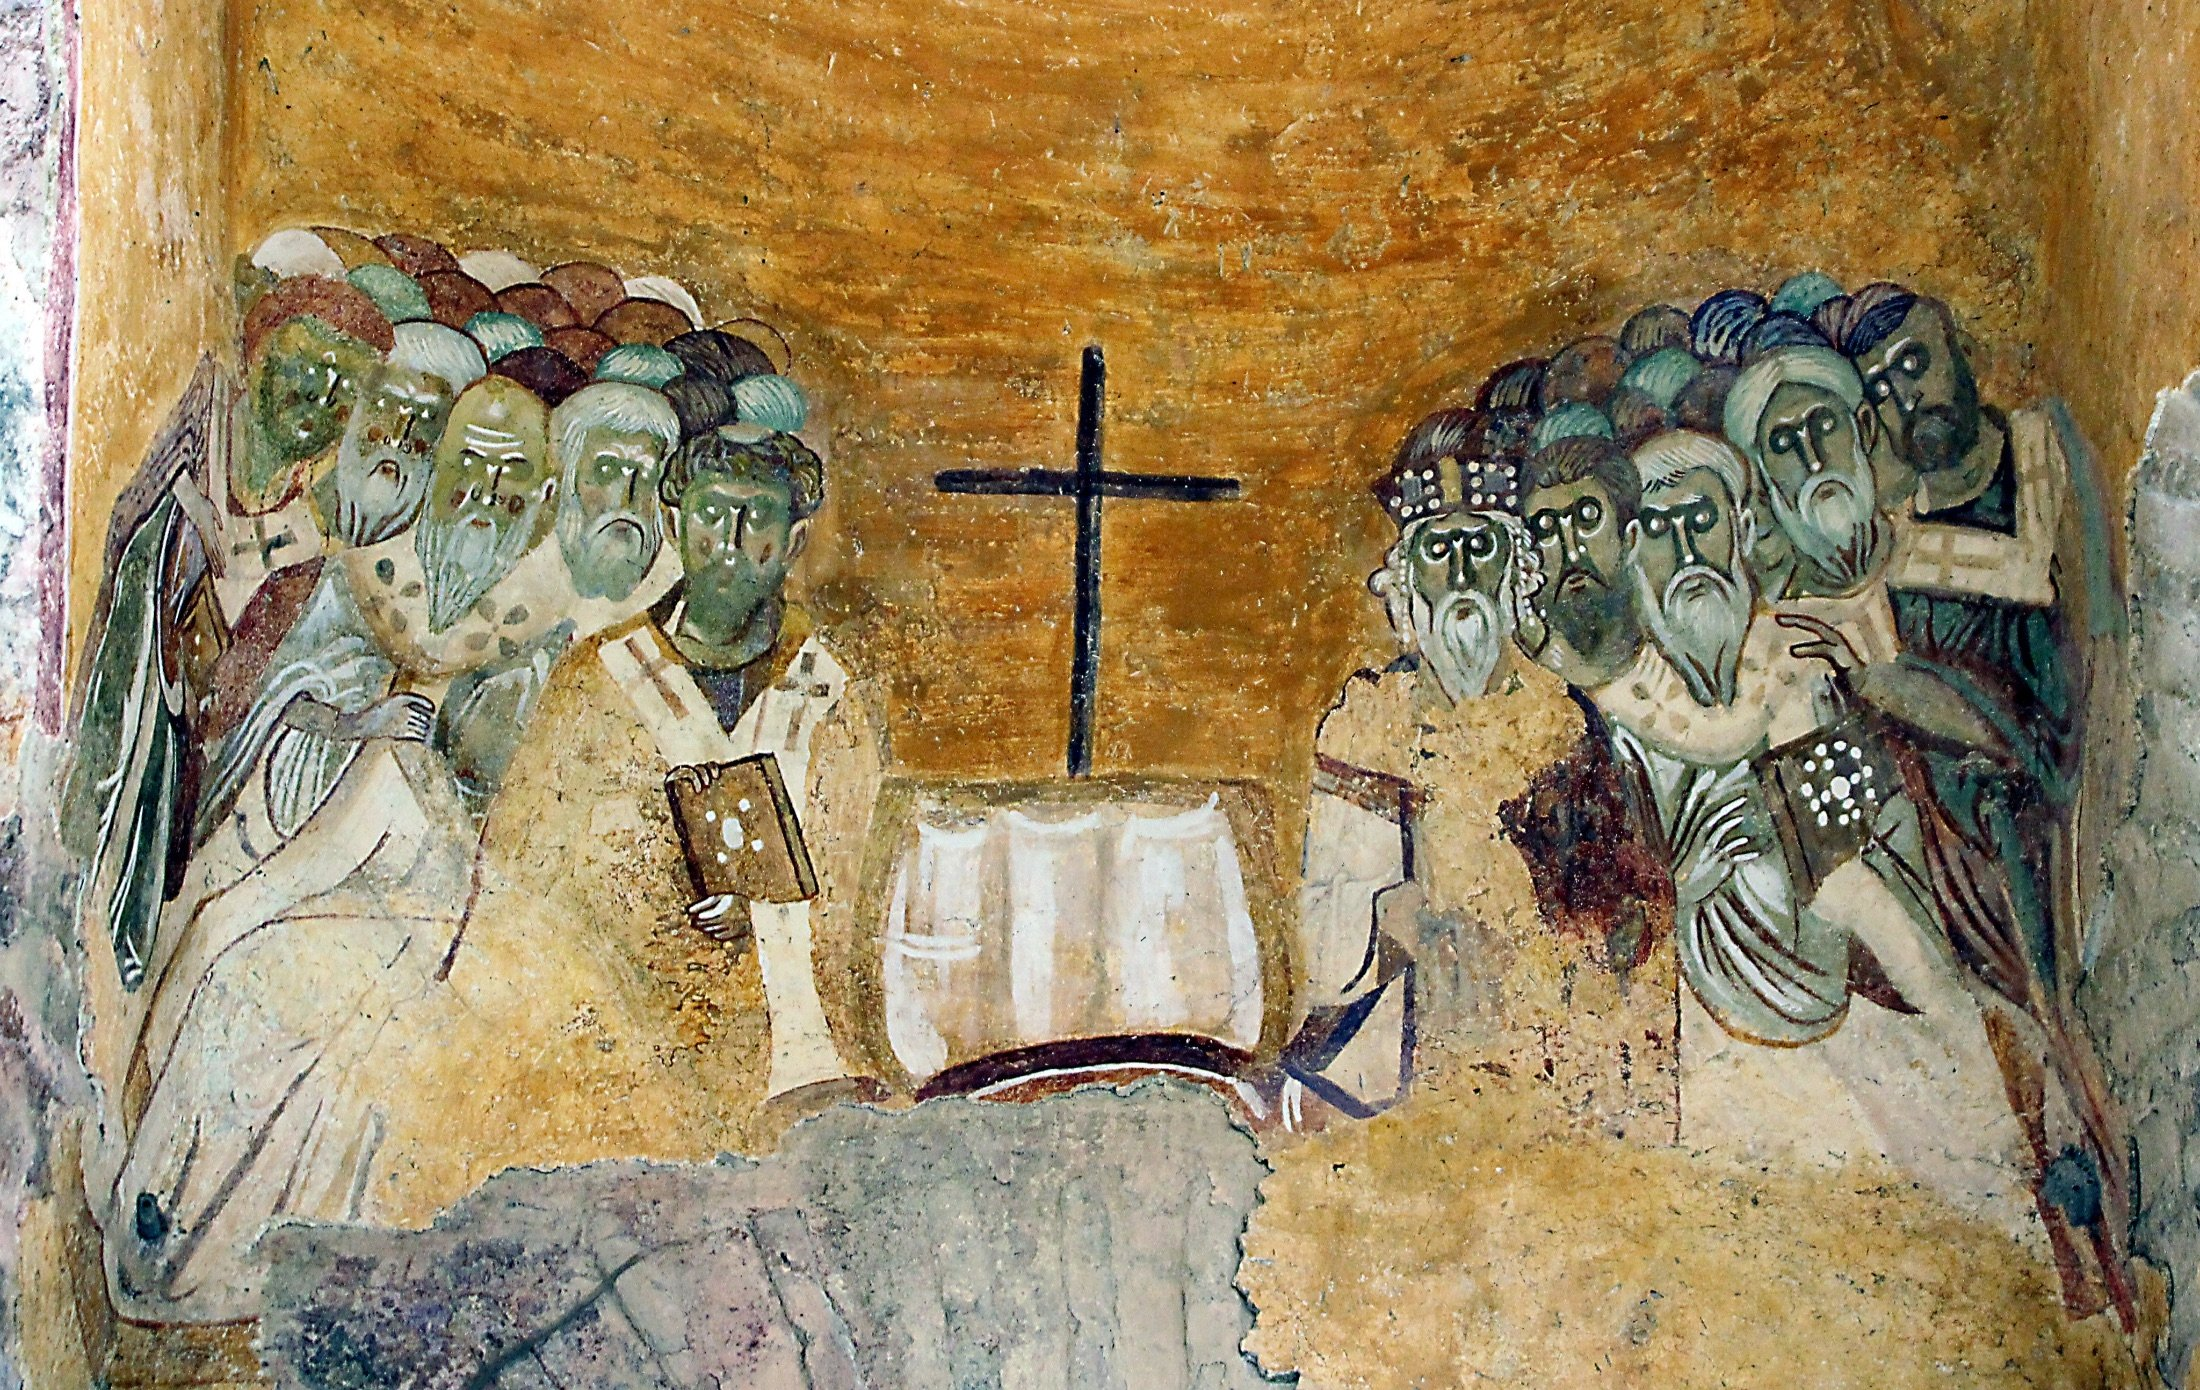 A Byzantine fresco painting depicting the first Council of Nicea on the wall of Saint Nicholas Church, Myra, present-day Demre, Turkey. (Getty Images)